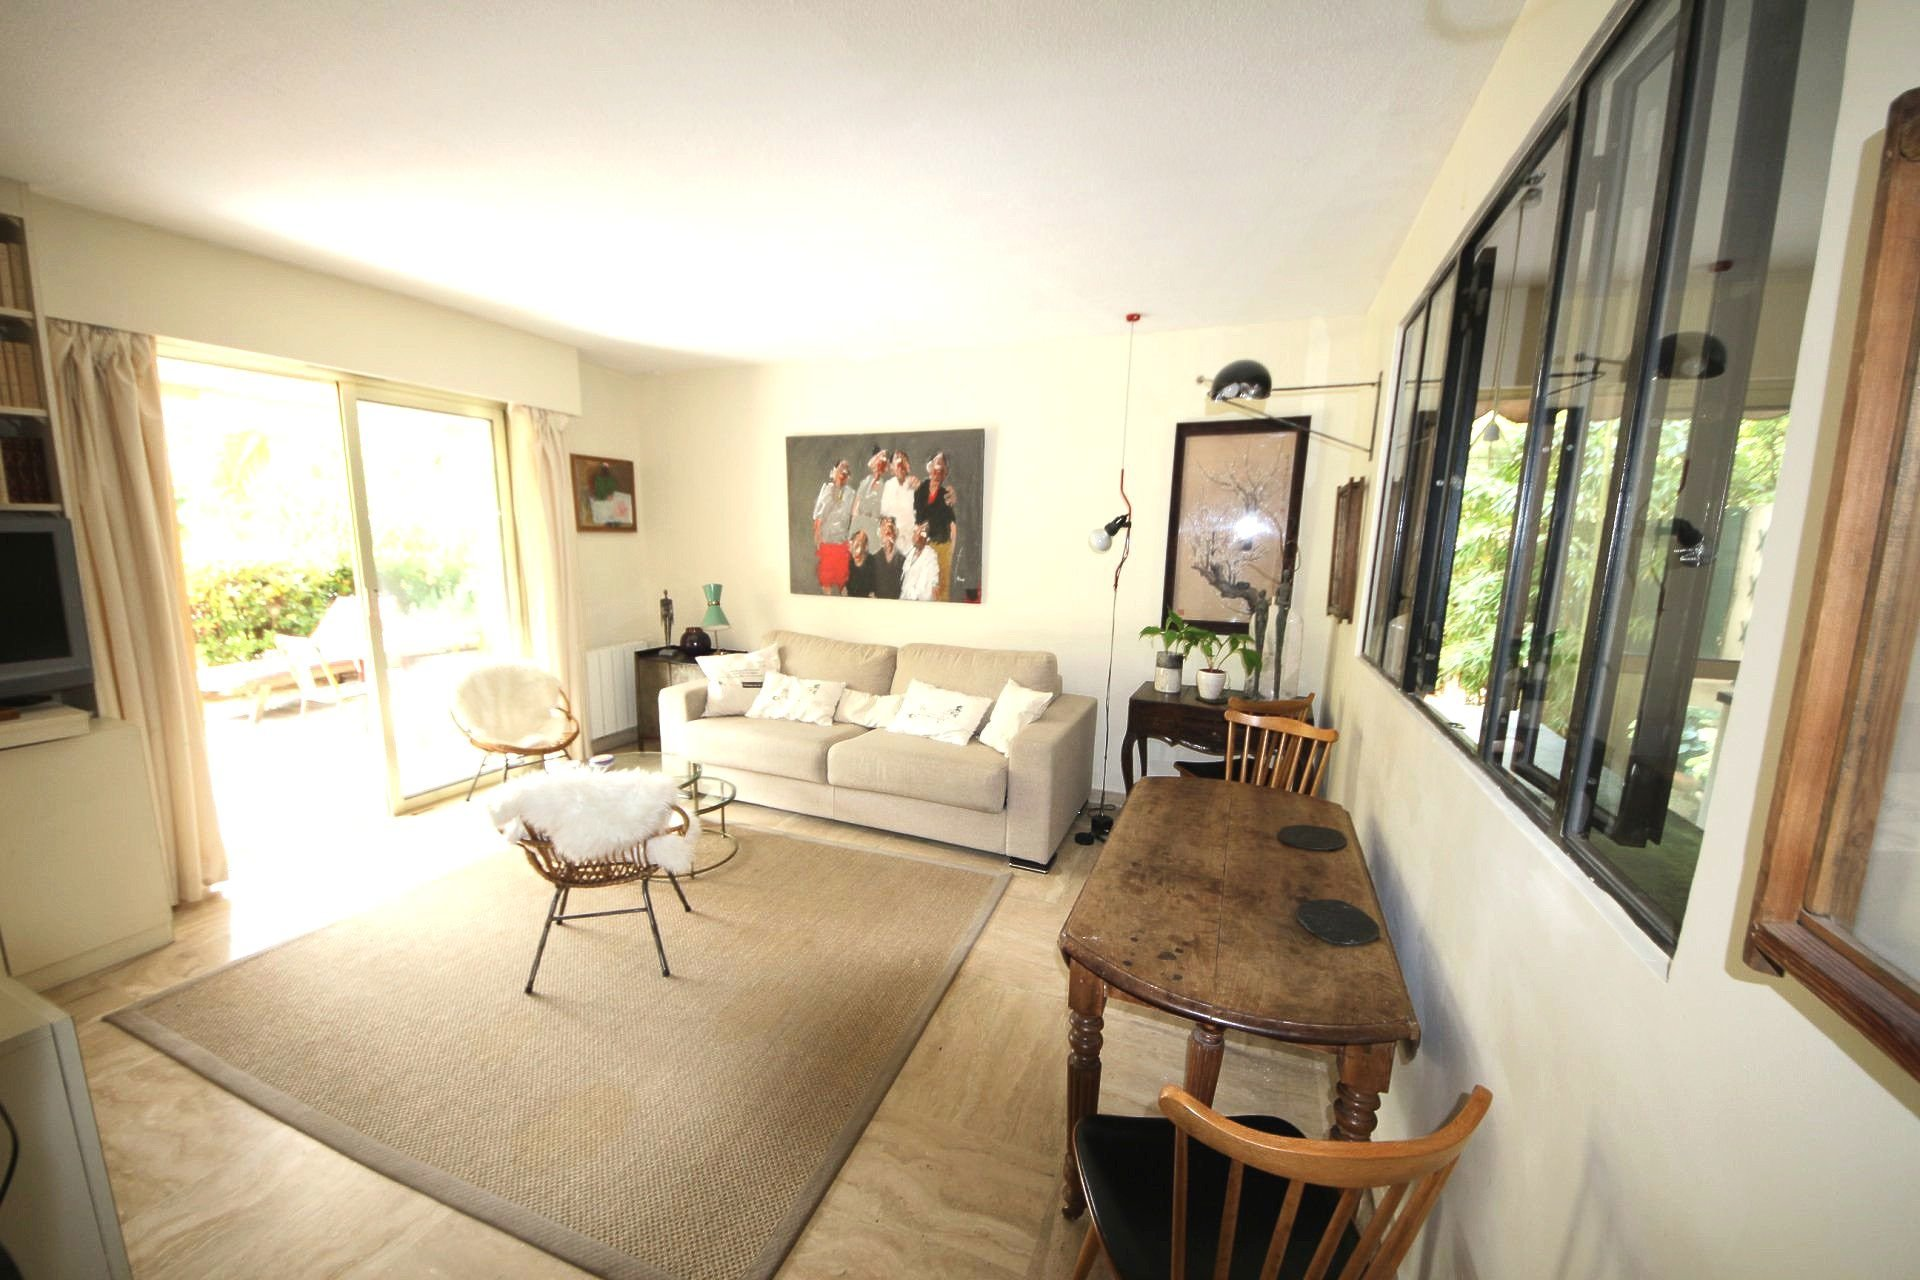 Cannes Montfleury 2P, RDJ of 47 Sqm with terrace of 70 Sqm